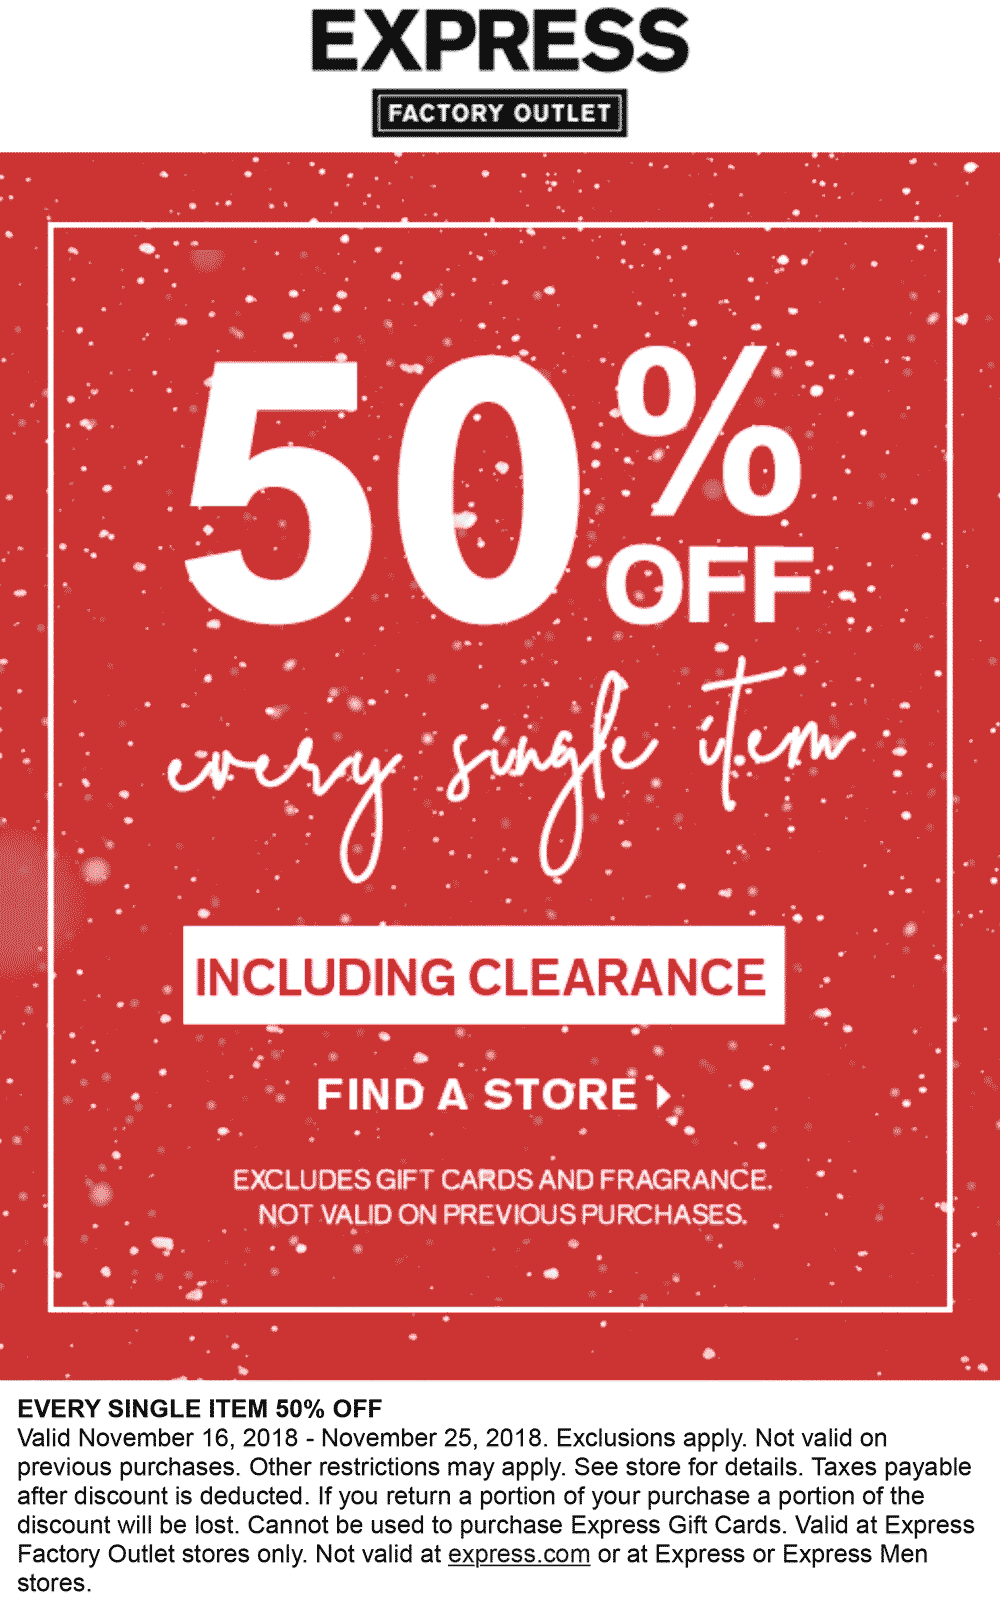 Express Factory Outlet Coupon September 2019 50% off everything at Express Factory Outlet